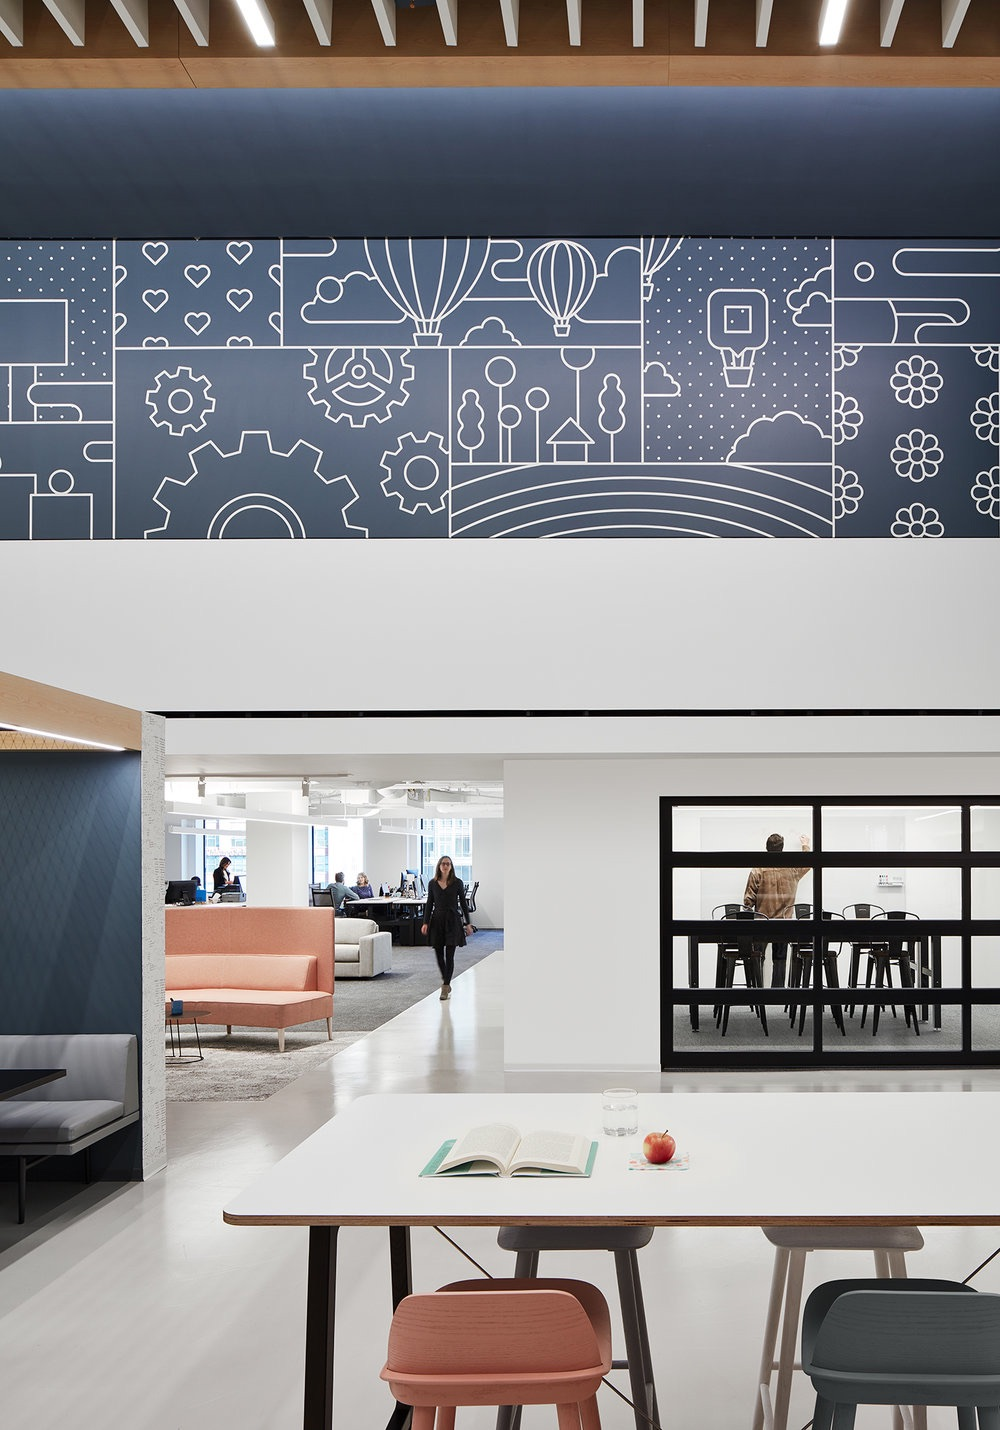 dscout-chicago-office-6